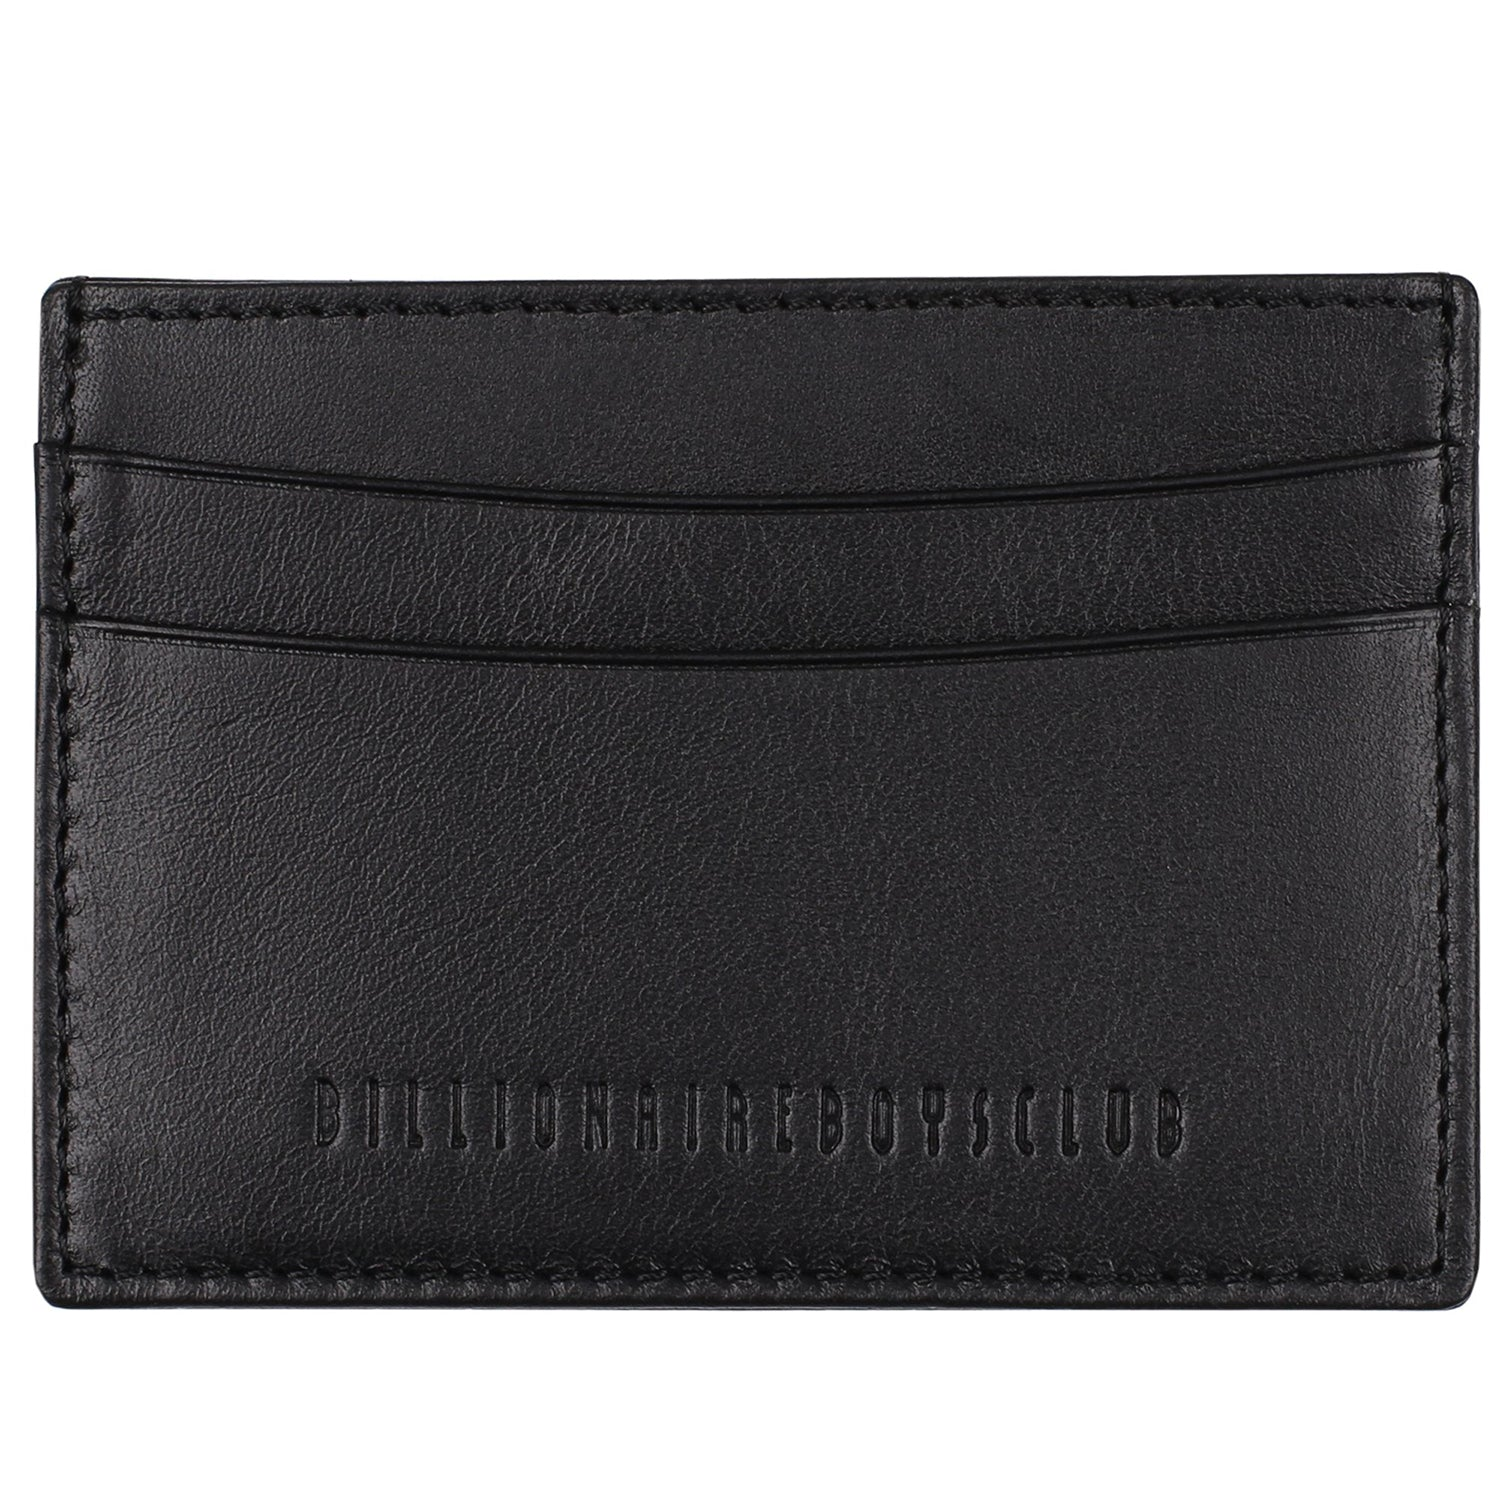 DEBOSSED LEATHER CARD HOLDER